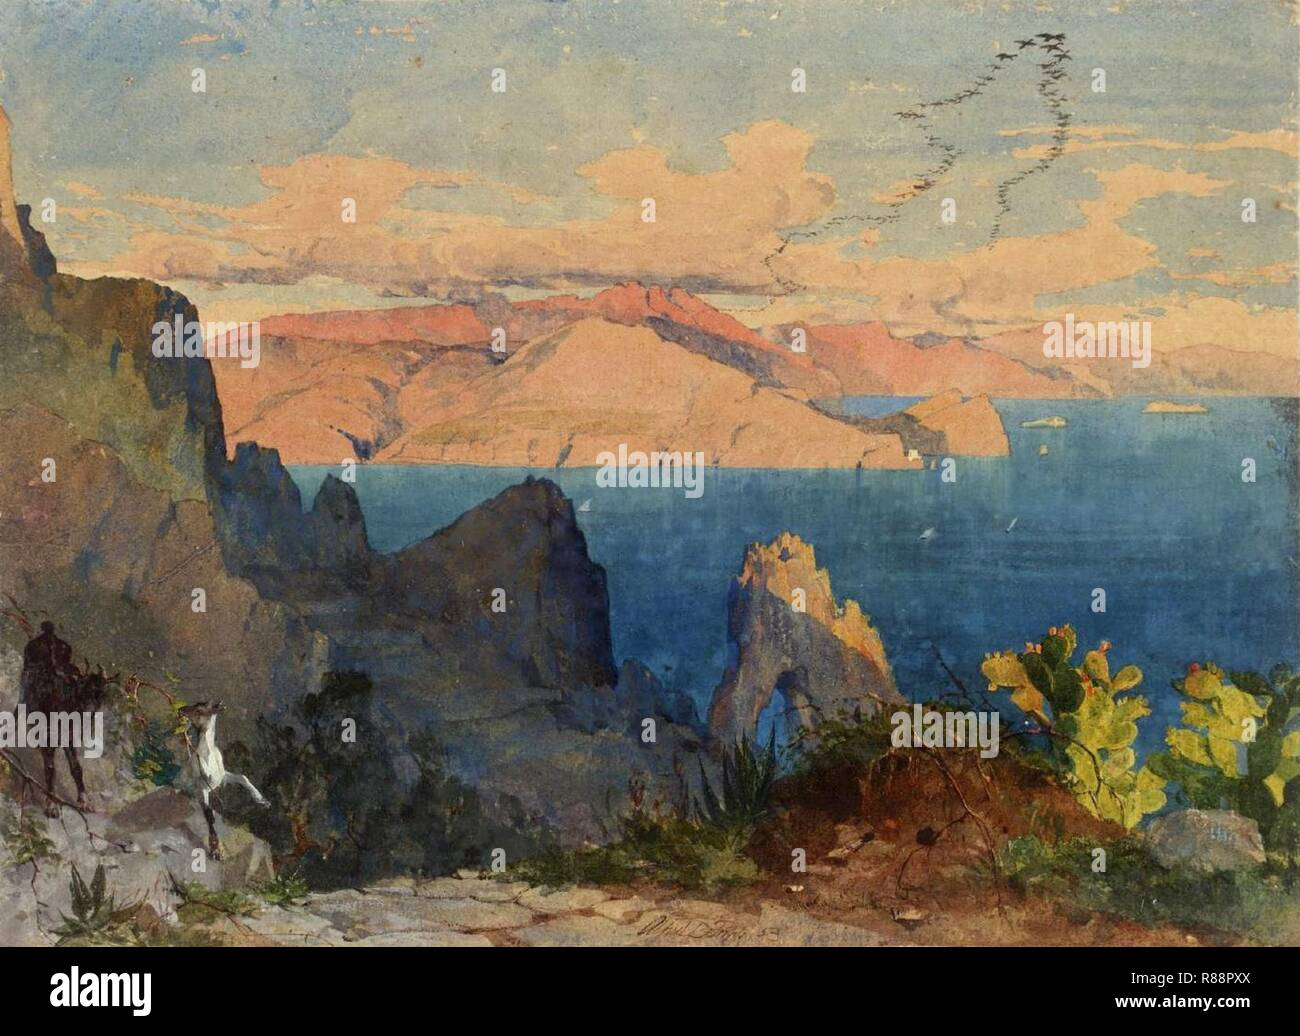 Capri 1853 by Alfred Downing Fripp. - Stock Image